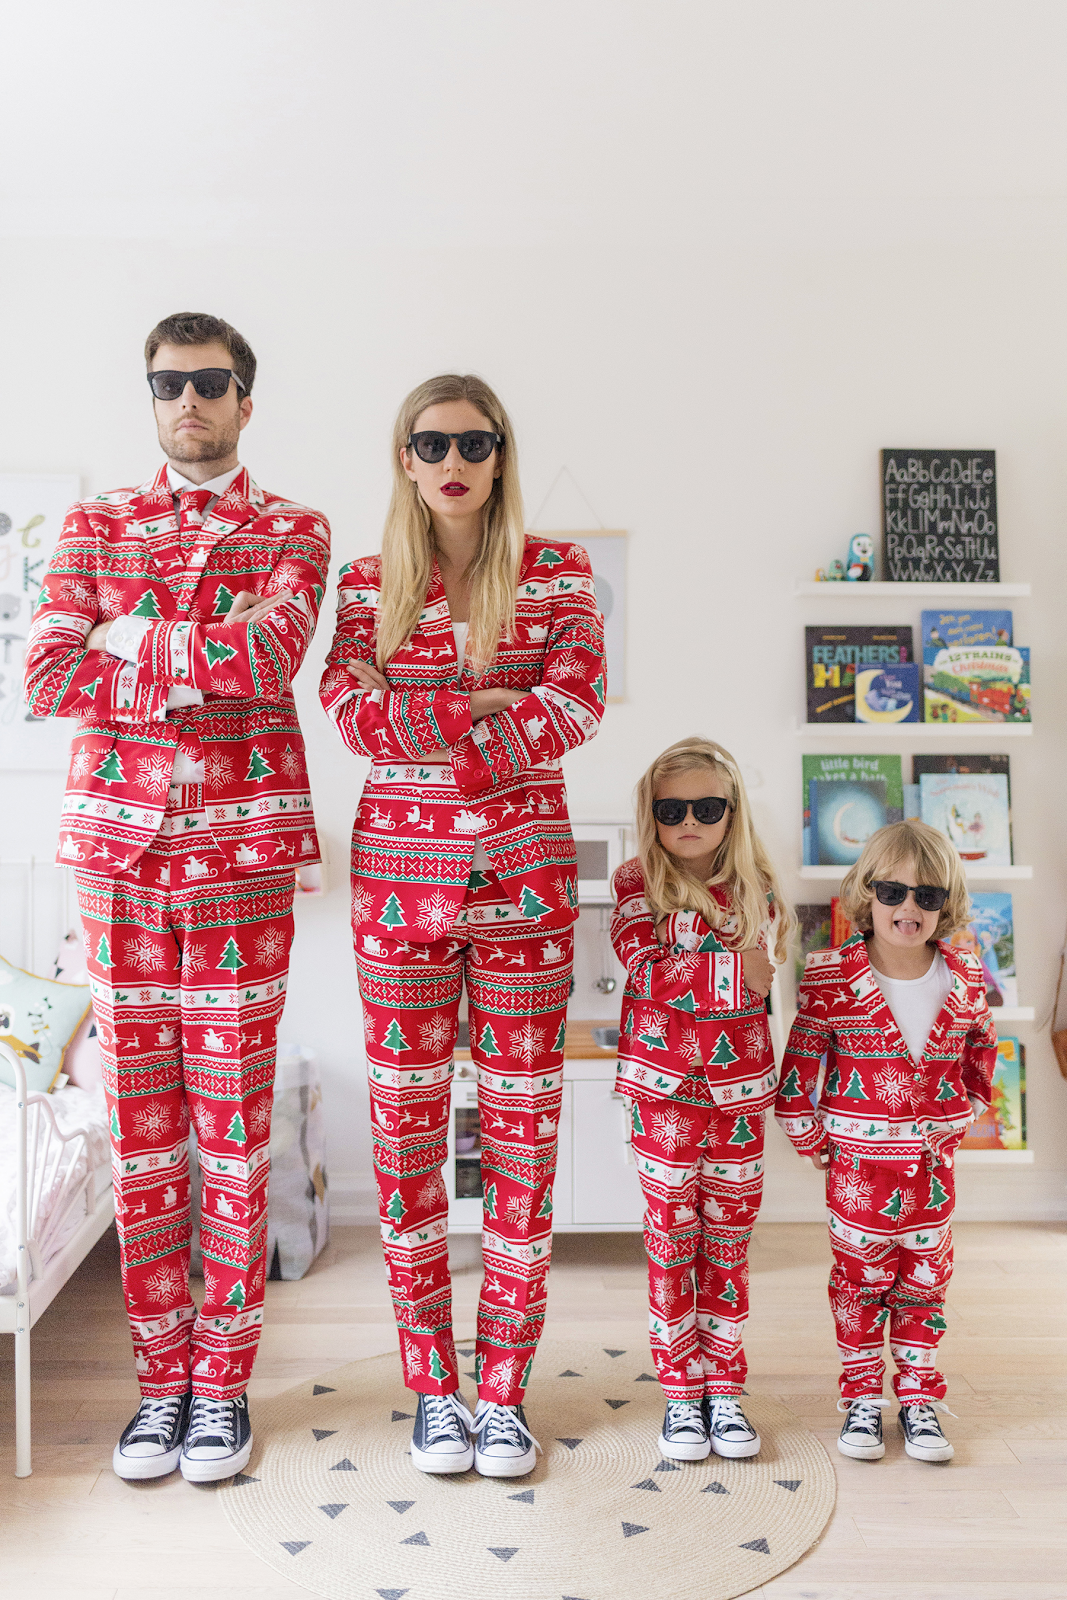 fun christmas card pose of family in matching holiday suits and sunglasses